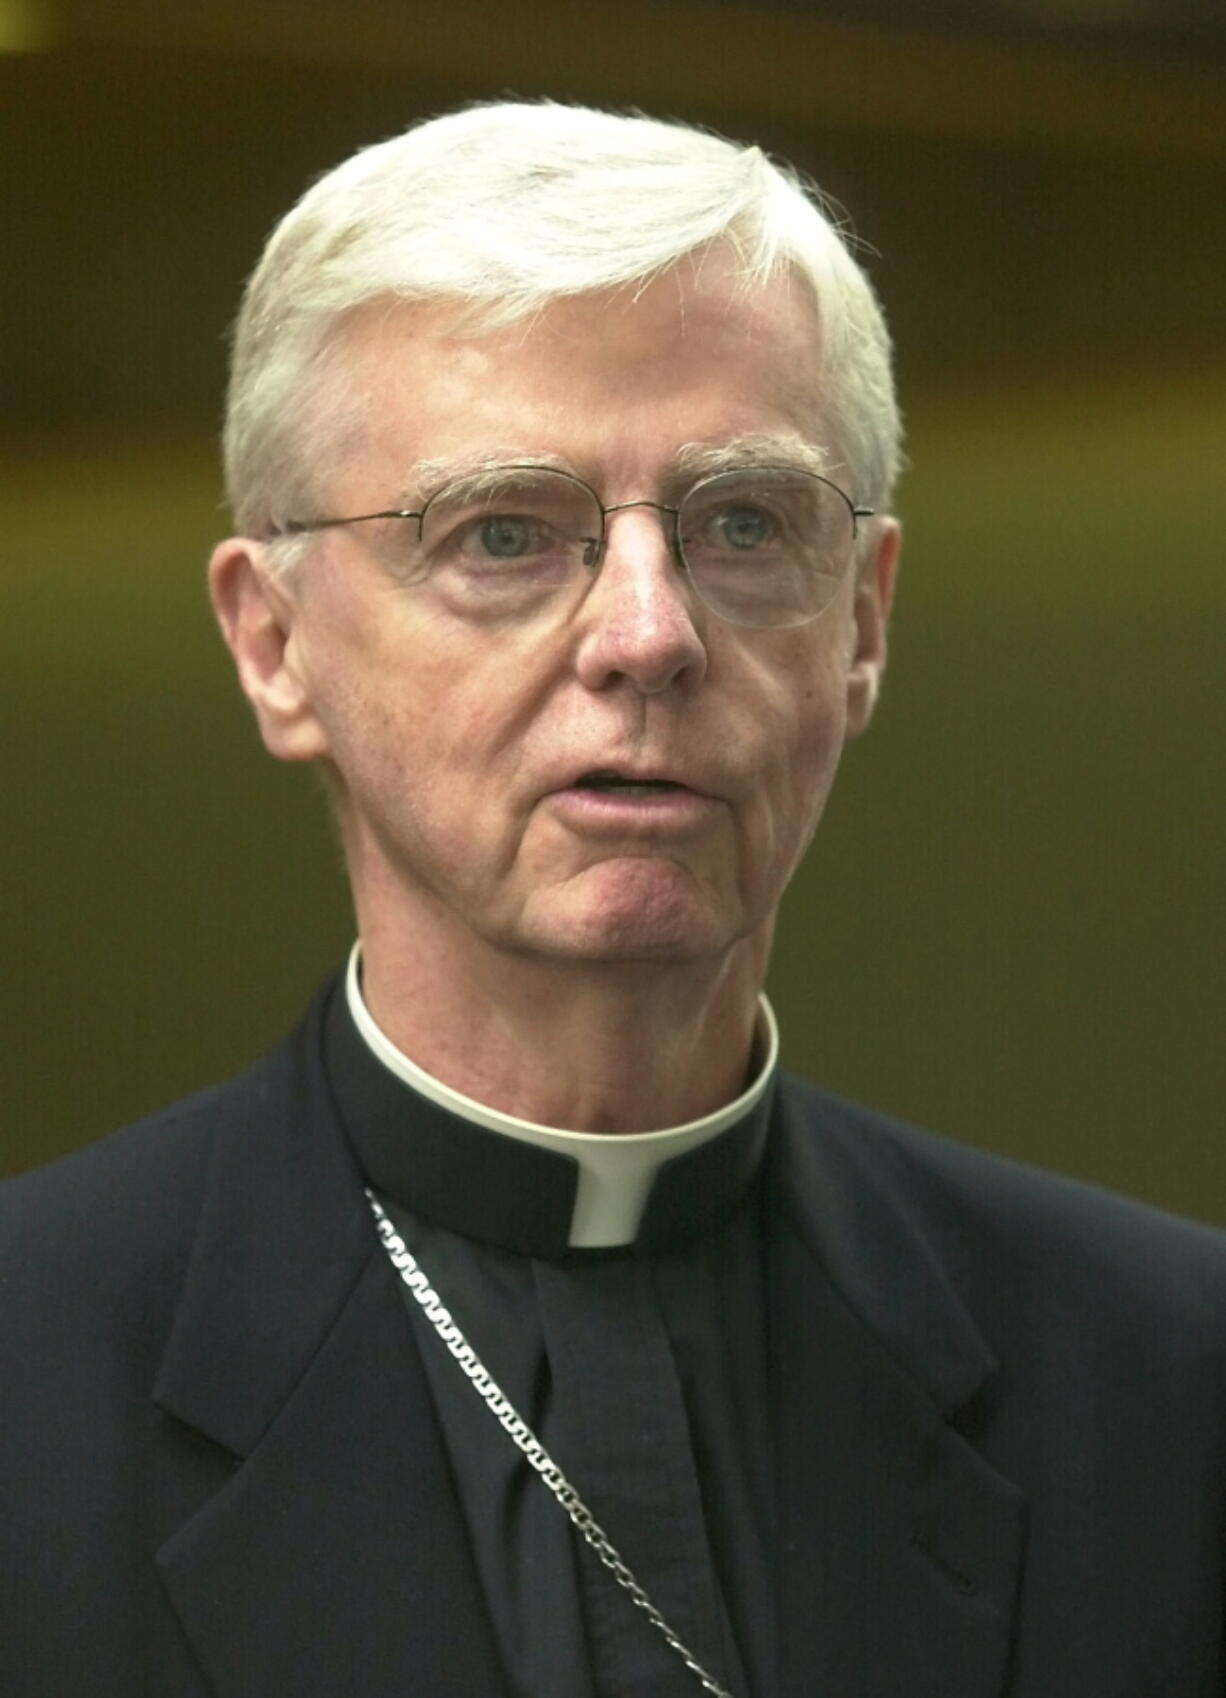 FILE -- New Hampshire Bishop John McCormack speaks to reporters, in Manchester, N.H., in this Thursday, Aug. 15, 2002 file photo. McCormack, who faced criticism for his role in Boston's clergy sex abuse scandal and led New Hampshire's diocese during its own reckoning, has died. McCormack, 86, died Tuesday, Sept. 21, 2021, at Mt. Carmel Rehabilitation and Nursing Center in Manchester, according to the Diocese of Manchester.